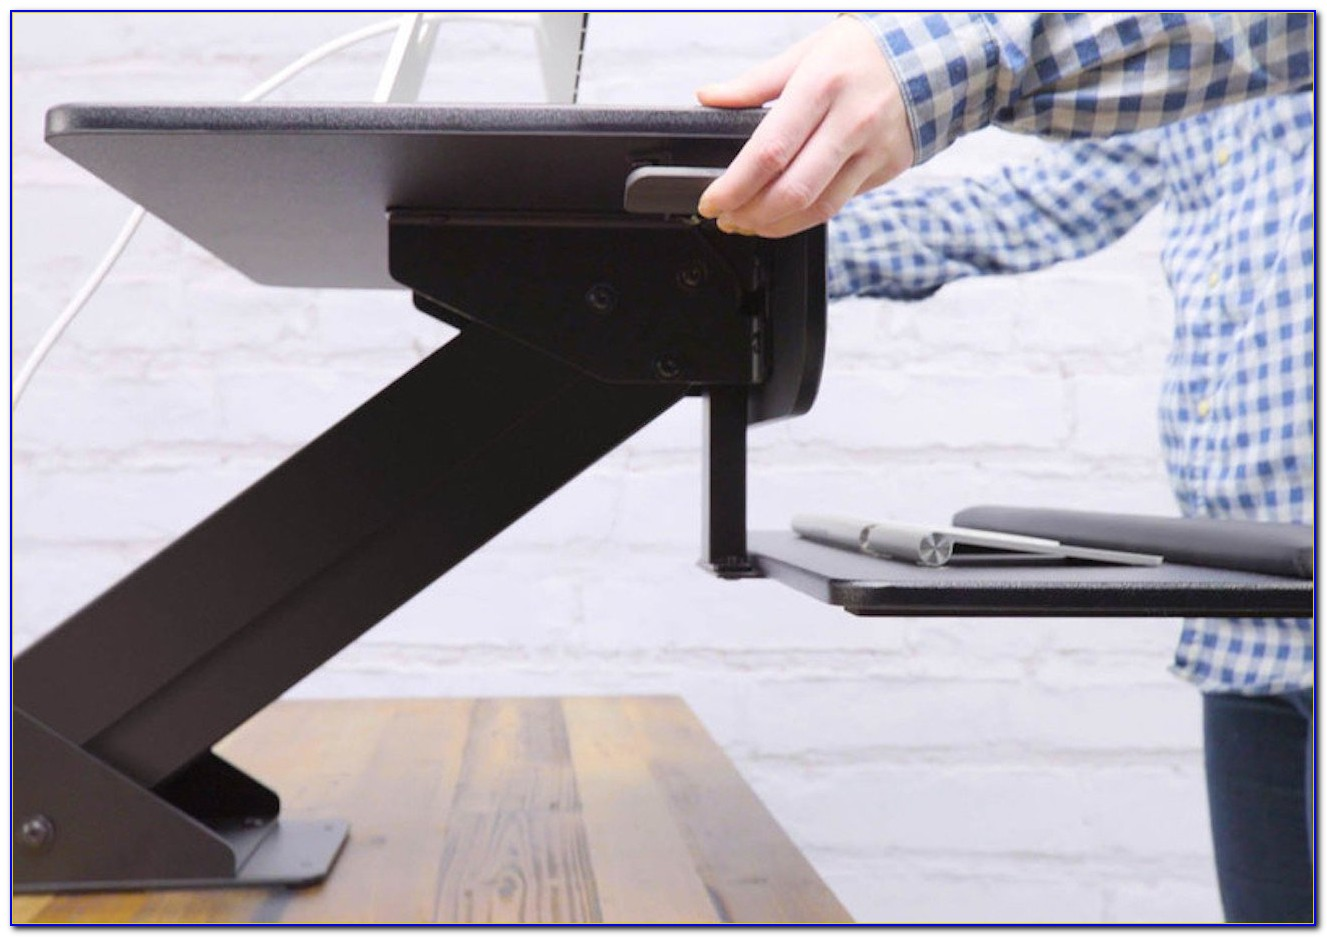 Ergo Stand Convert Desk To Stand Up Desk